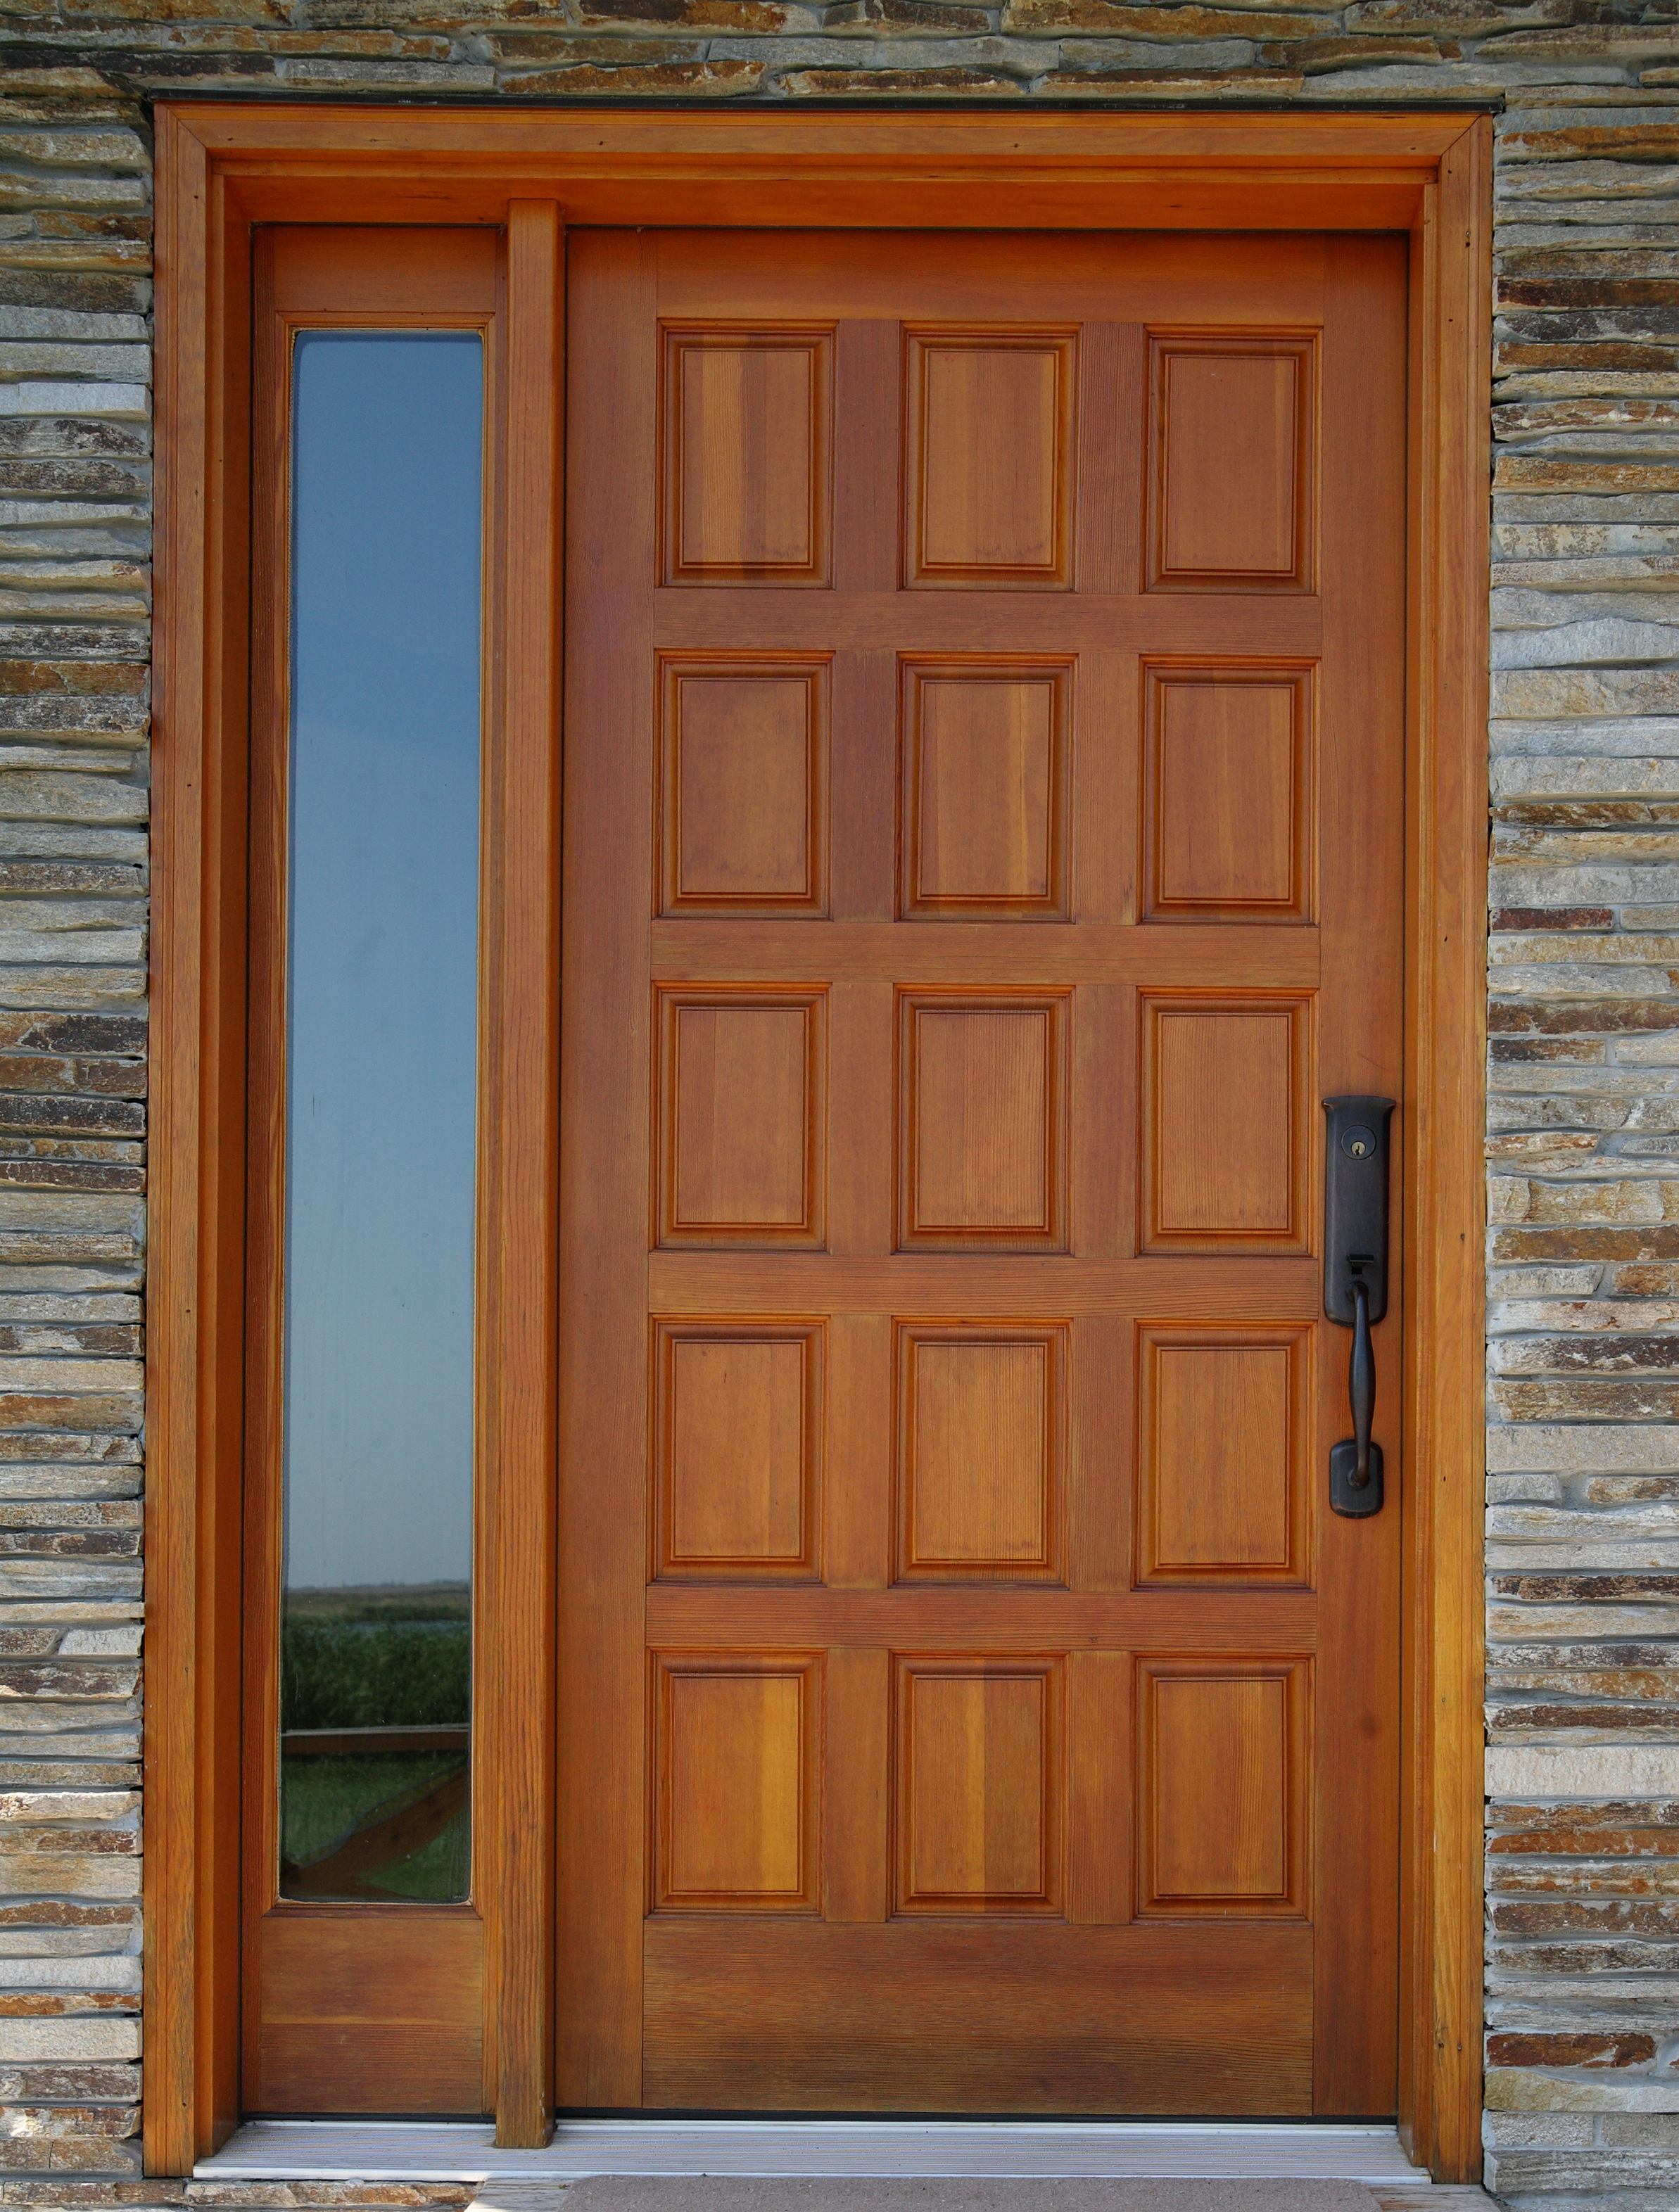 Amazing Dream Definition Door - Dreamicus